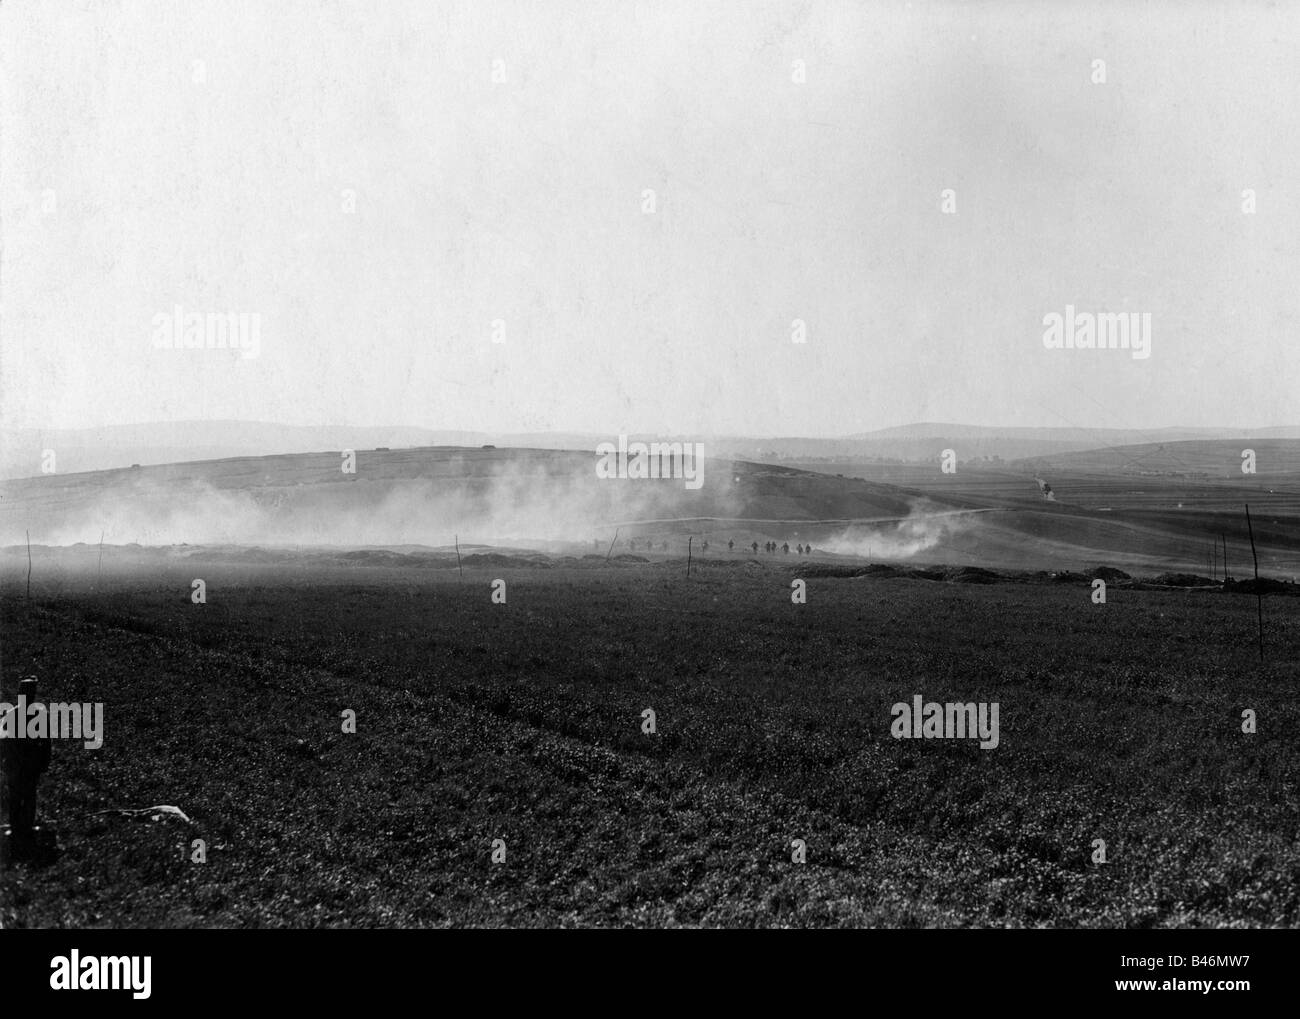 events, First World War / WWI, Western Front, advancing German stormtroops, France, 1918, Additional-Rights-Clearances - Stock Image